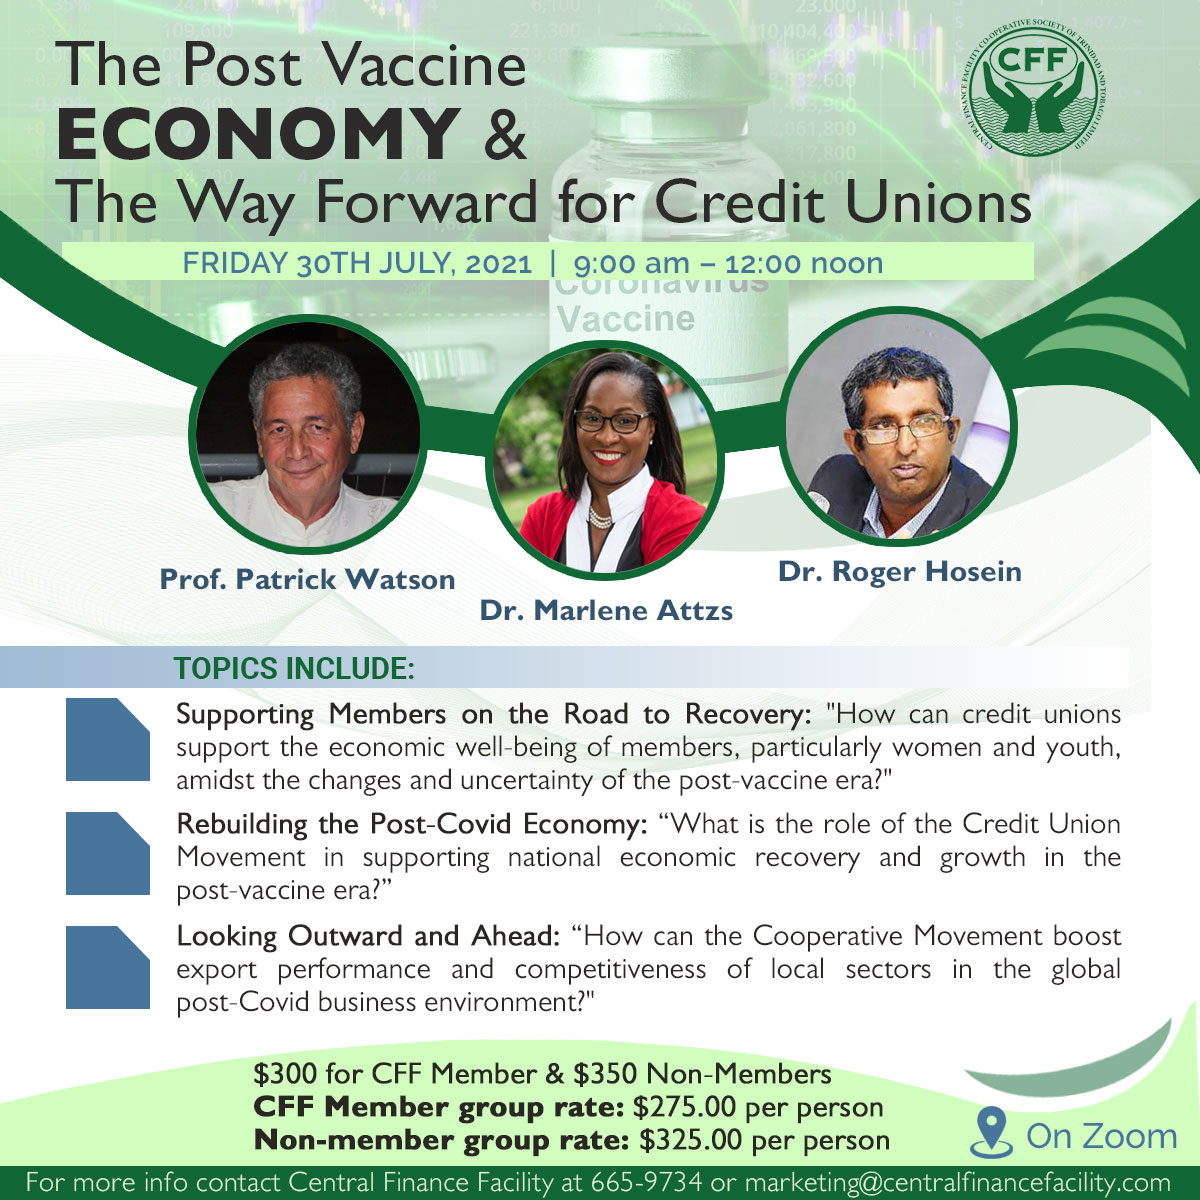 The Post Vaccine Economy and the Way Forward for Credit Unions Virtual Thought Leadership